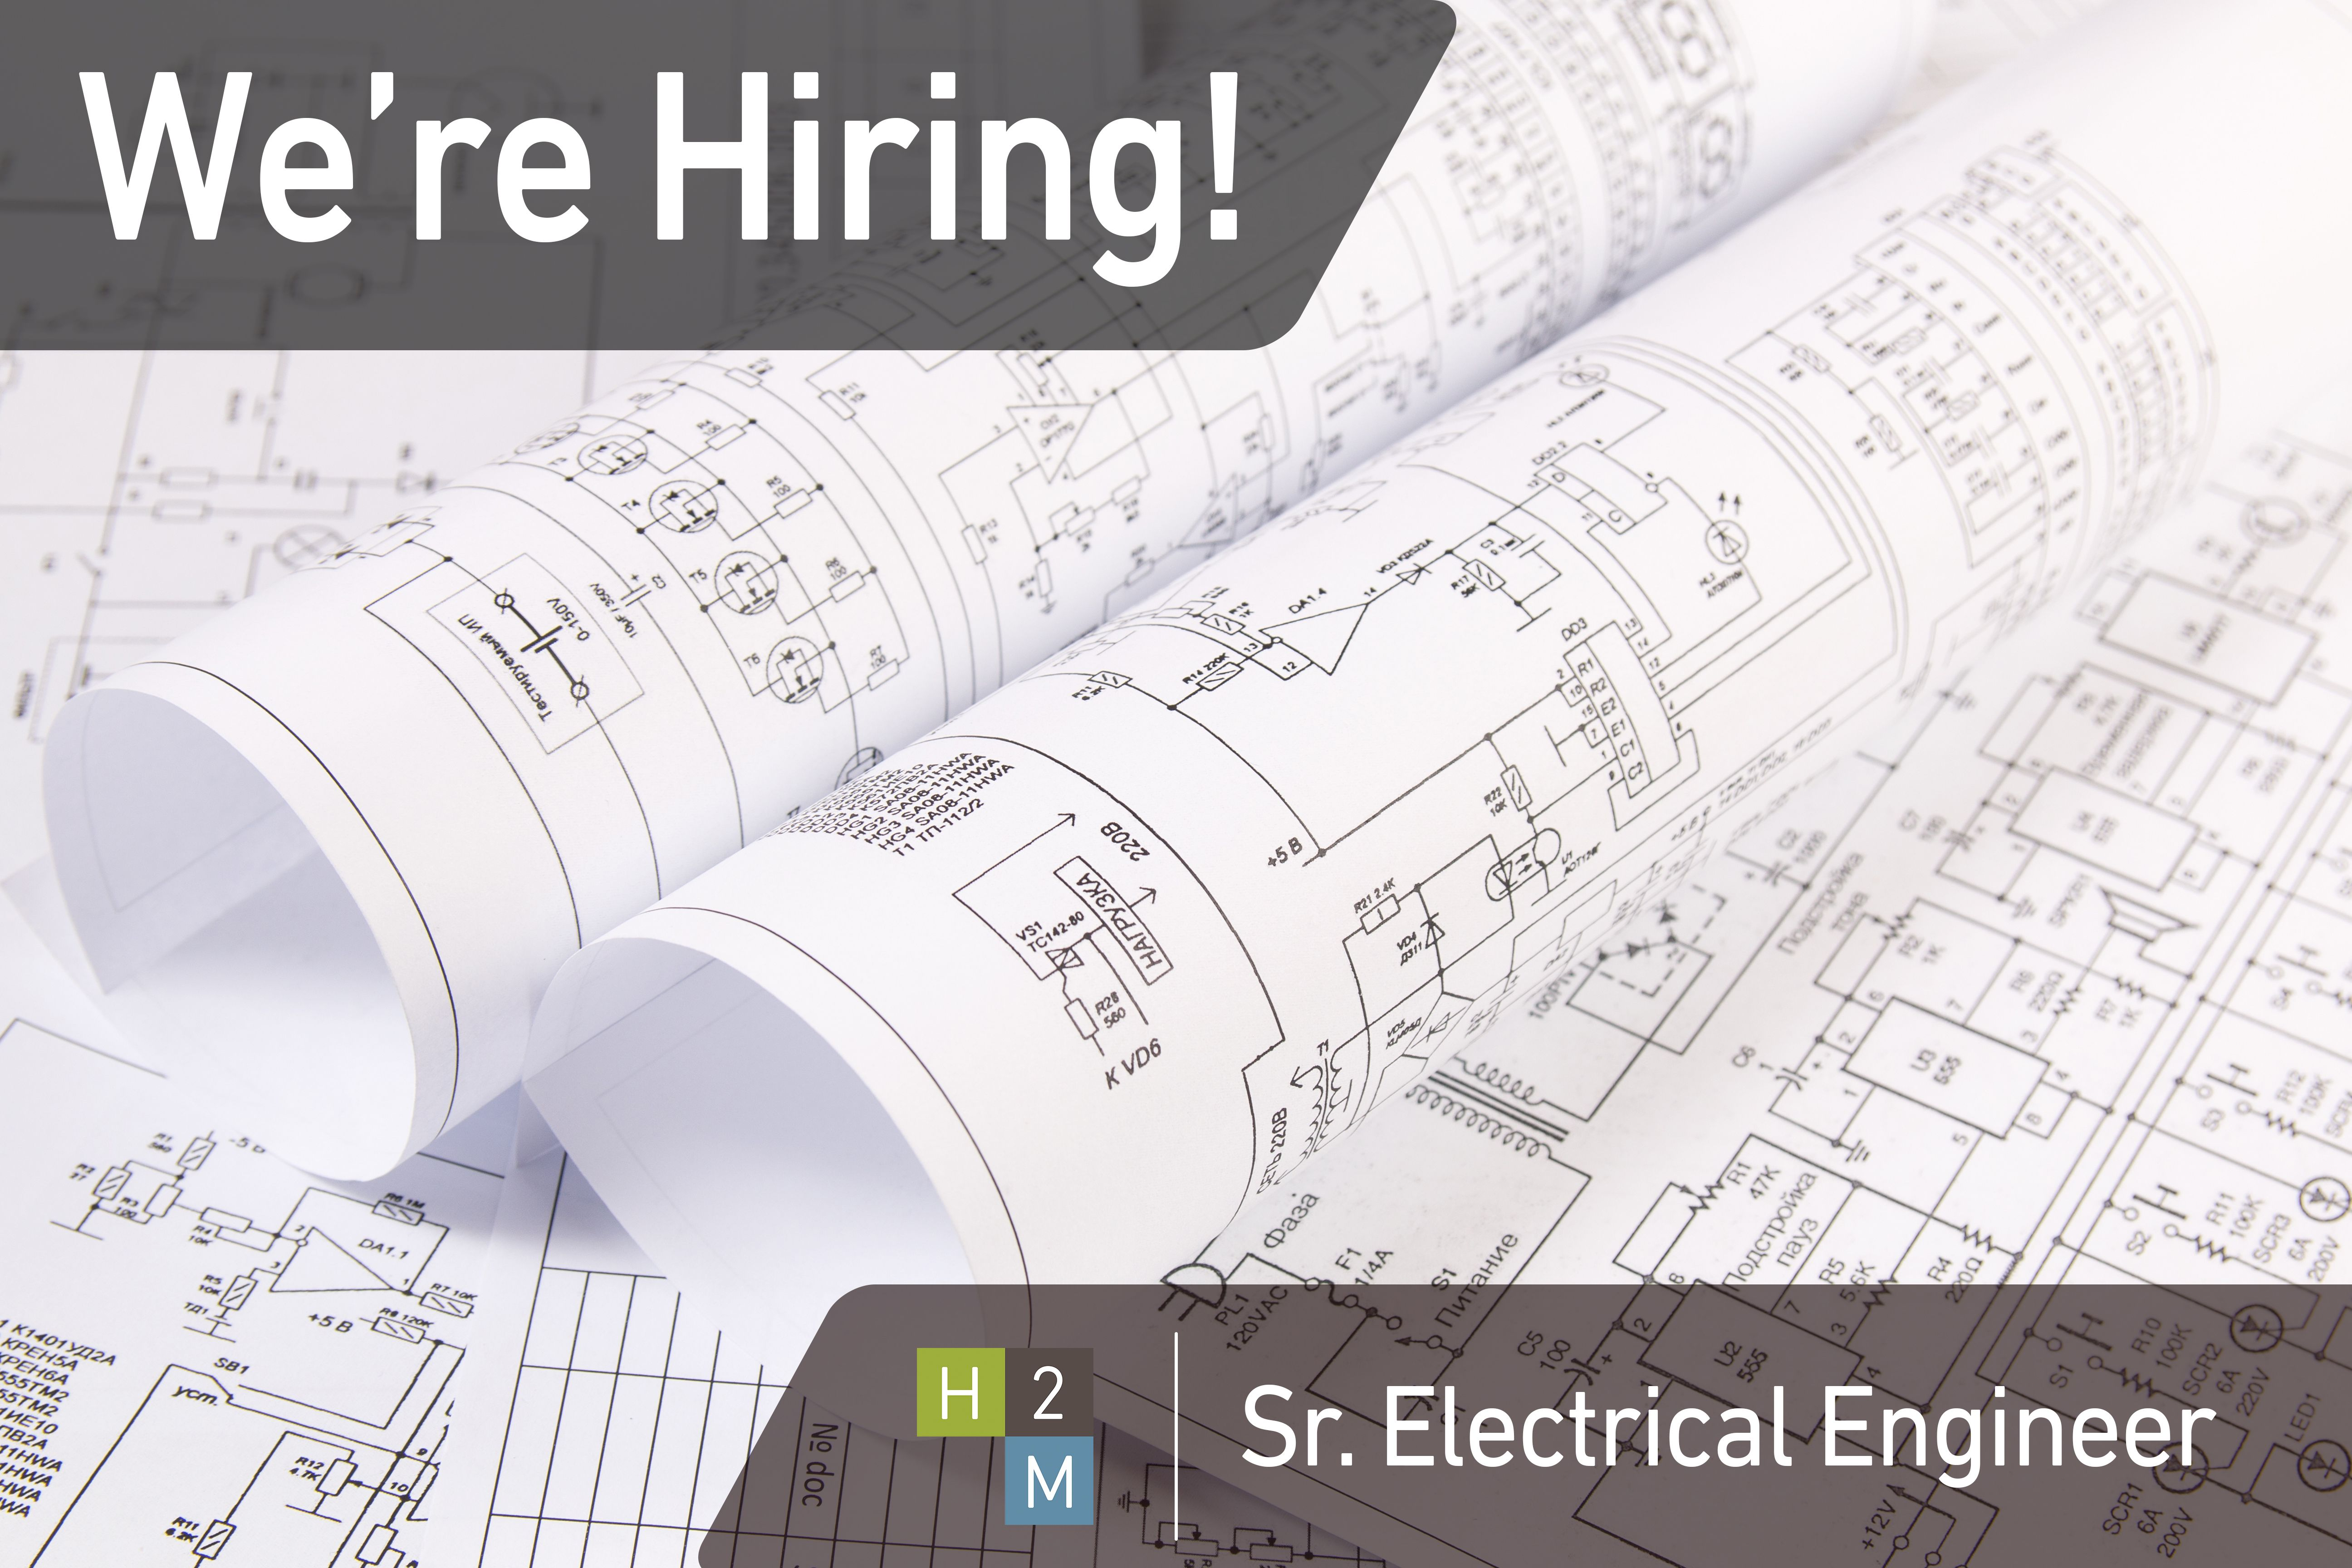 we re hiring sr electrical engineer location albany ny job [ 5184 x 3456 Pixel ]